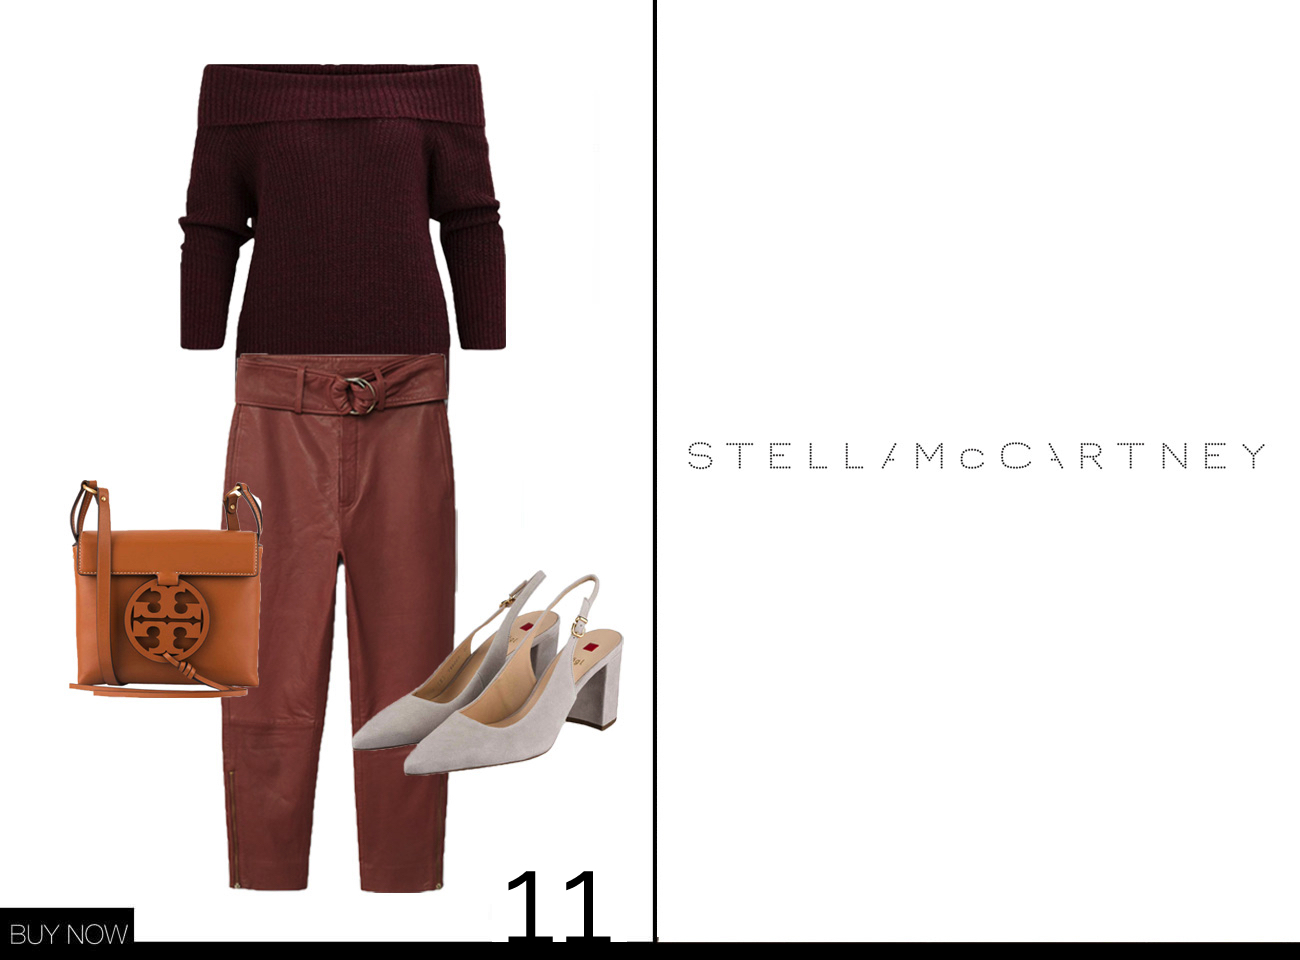 Stella McCartney Herbst Winter Kollektion 18/19 nachgestylt